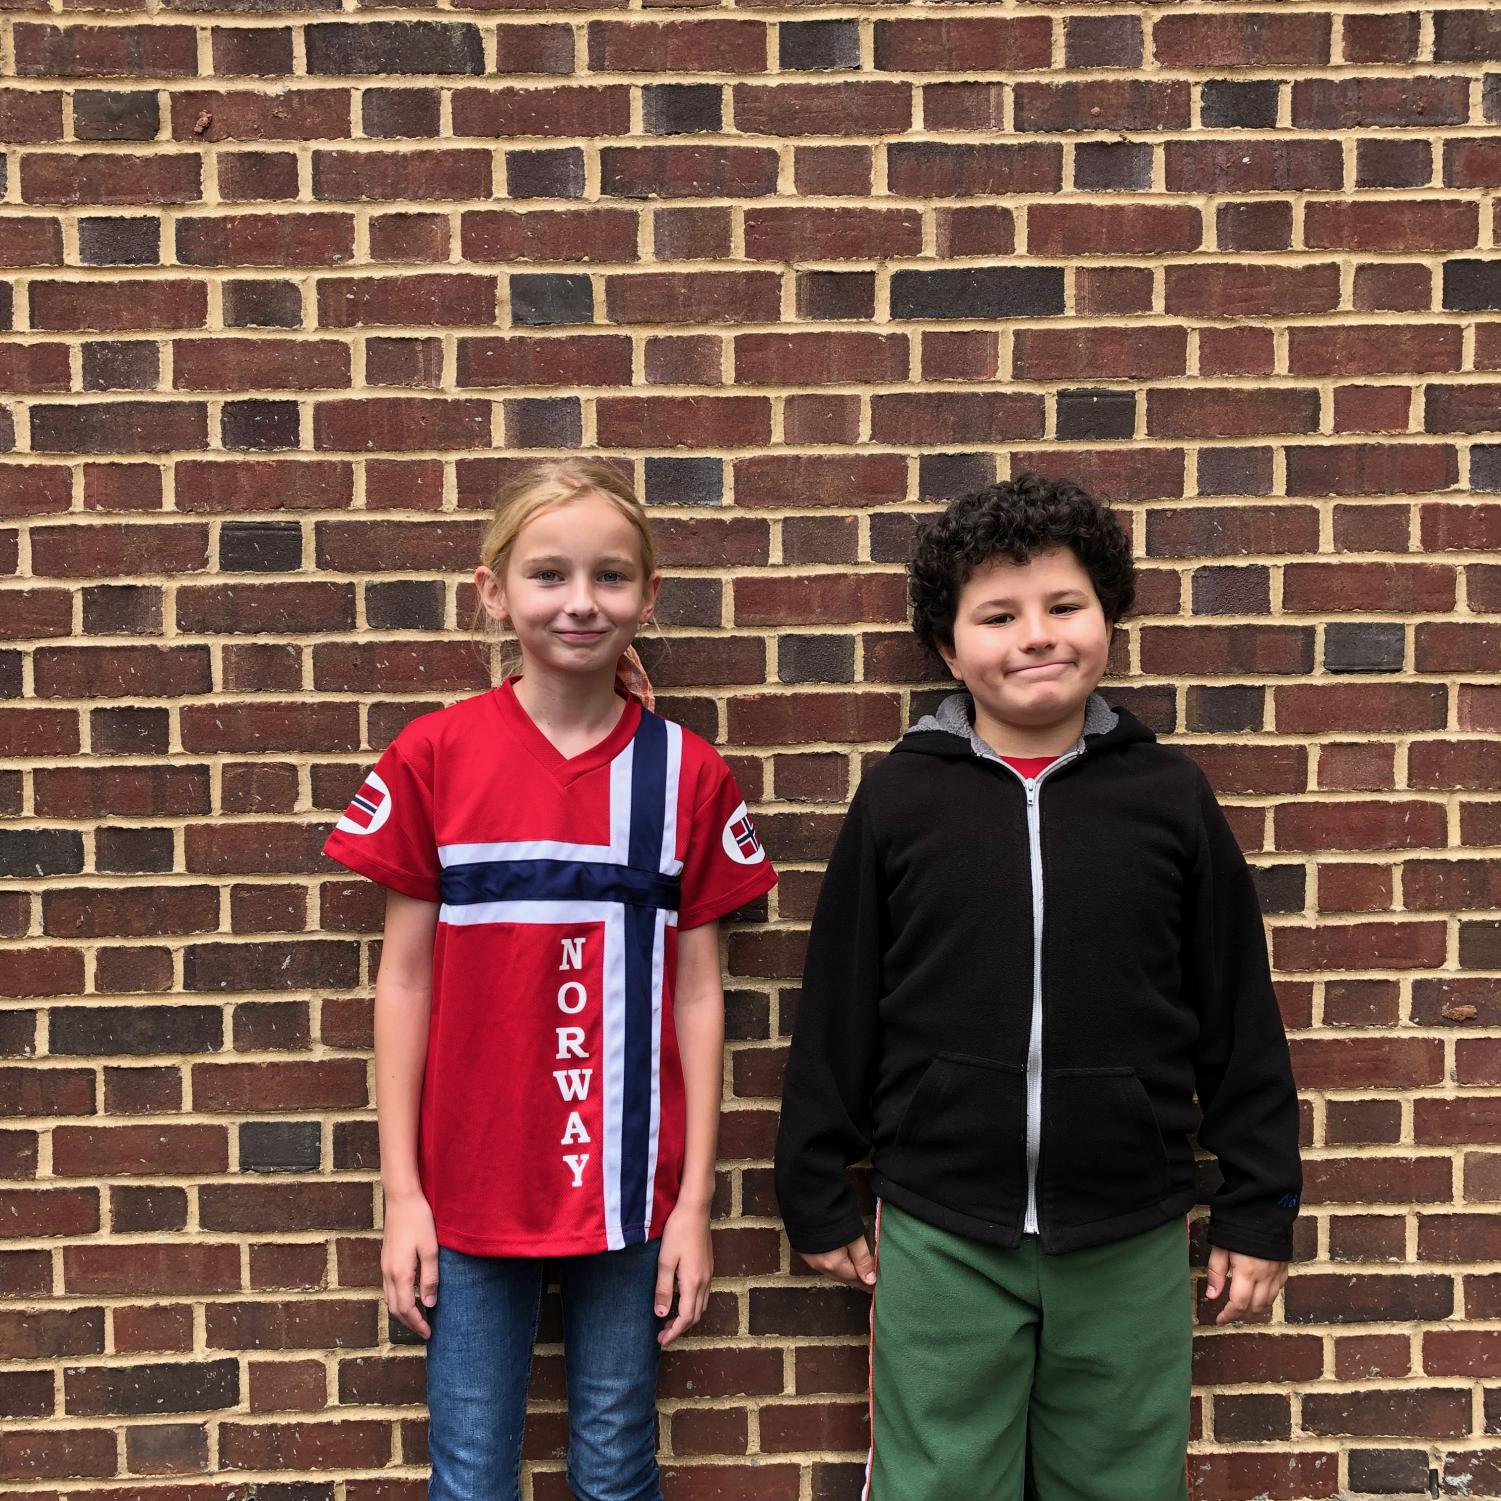 Anna Shiels and Todd Kerman were the fourth grade winners.